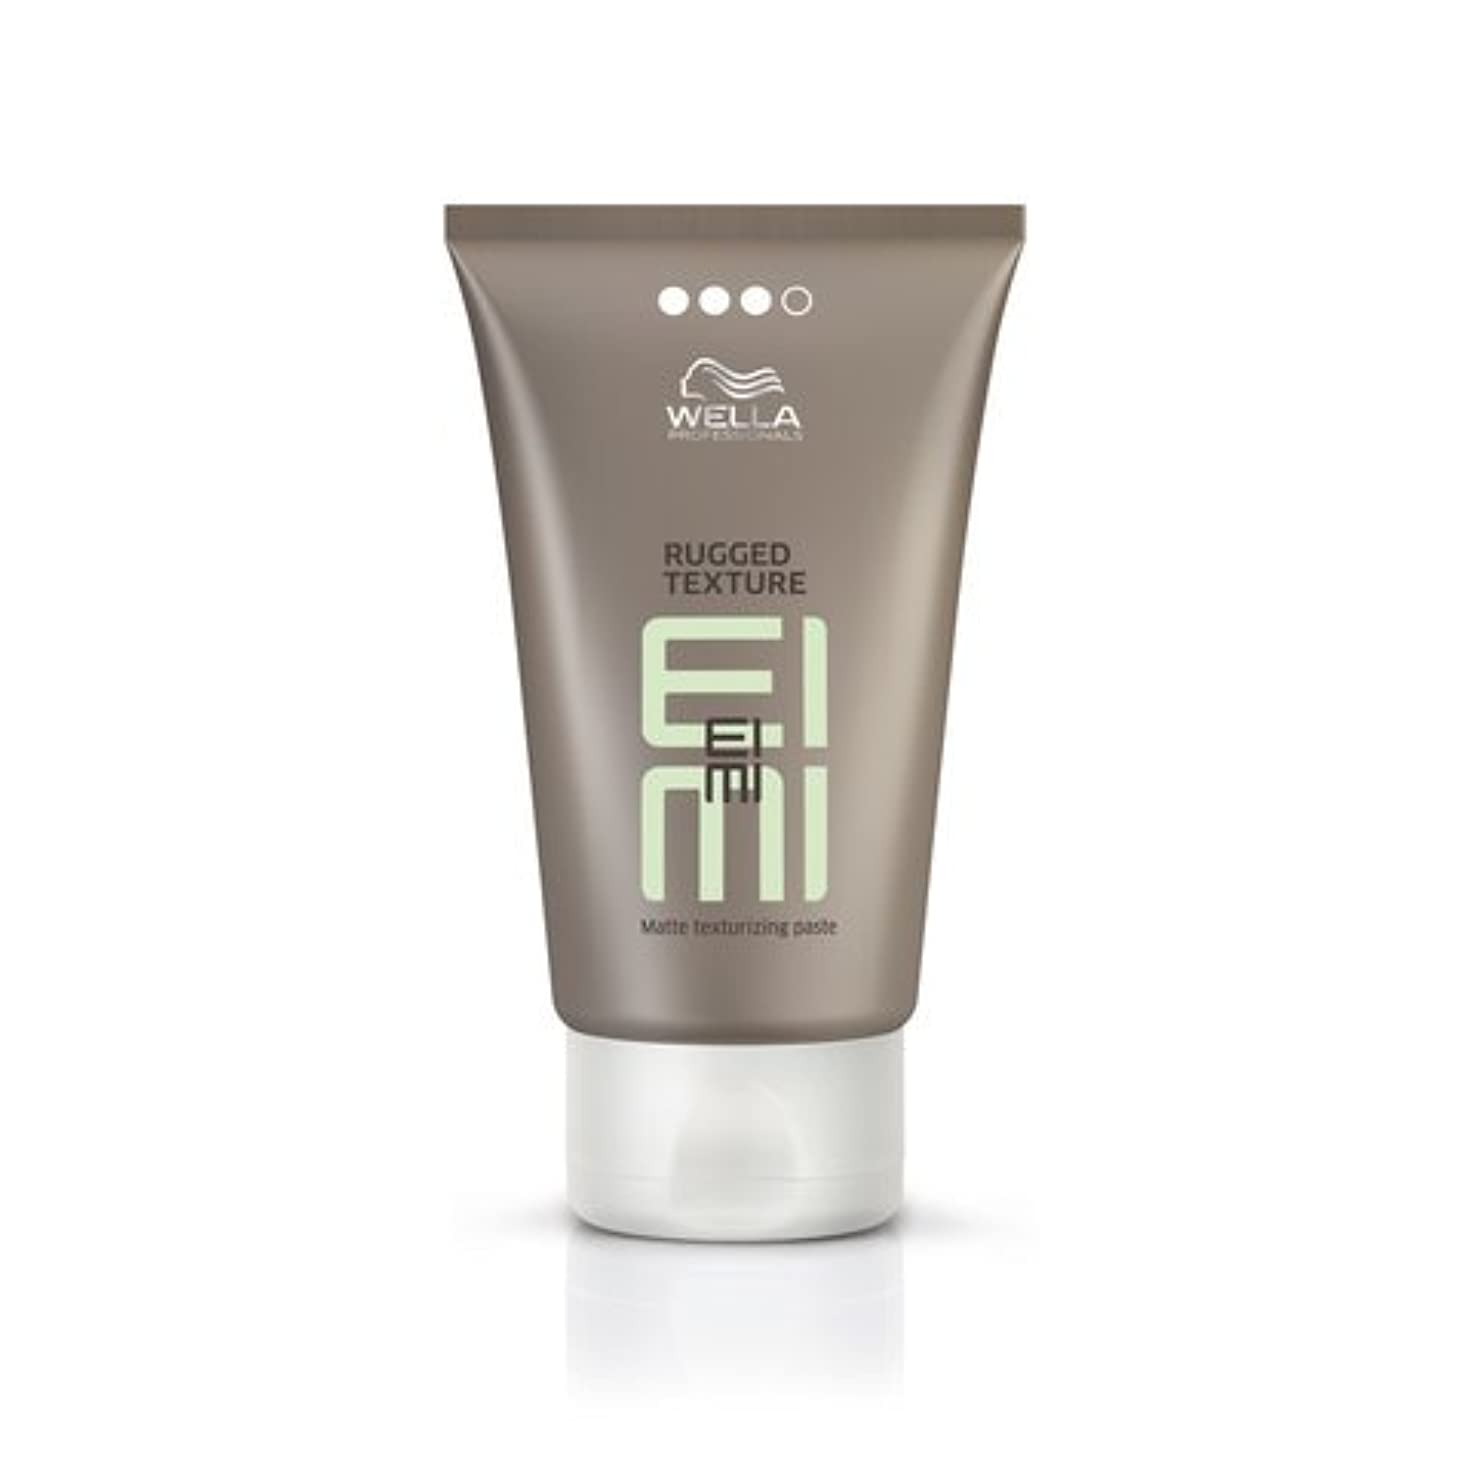 無数の分布工夫するWella EIMI Rugged Texture - Matte Texturising Paste 75 ml [並行輸入品]